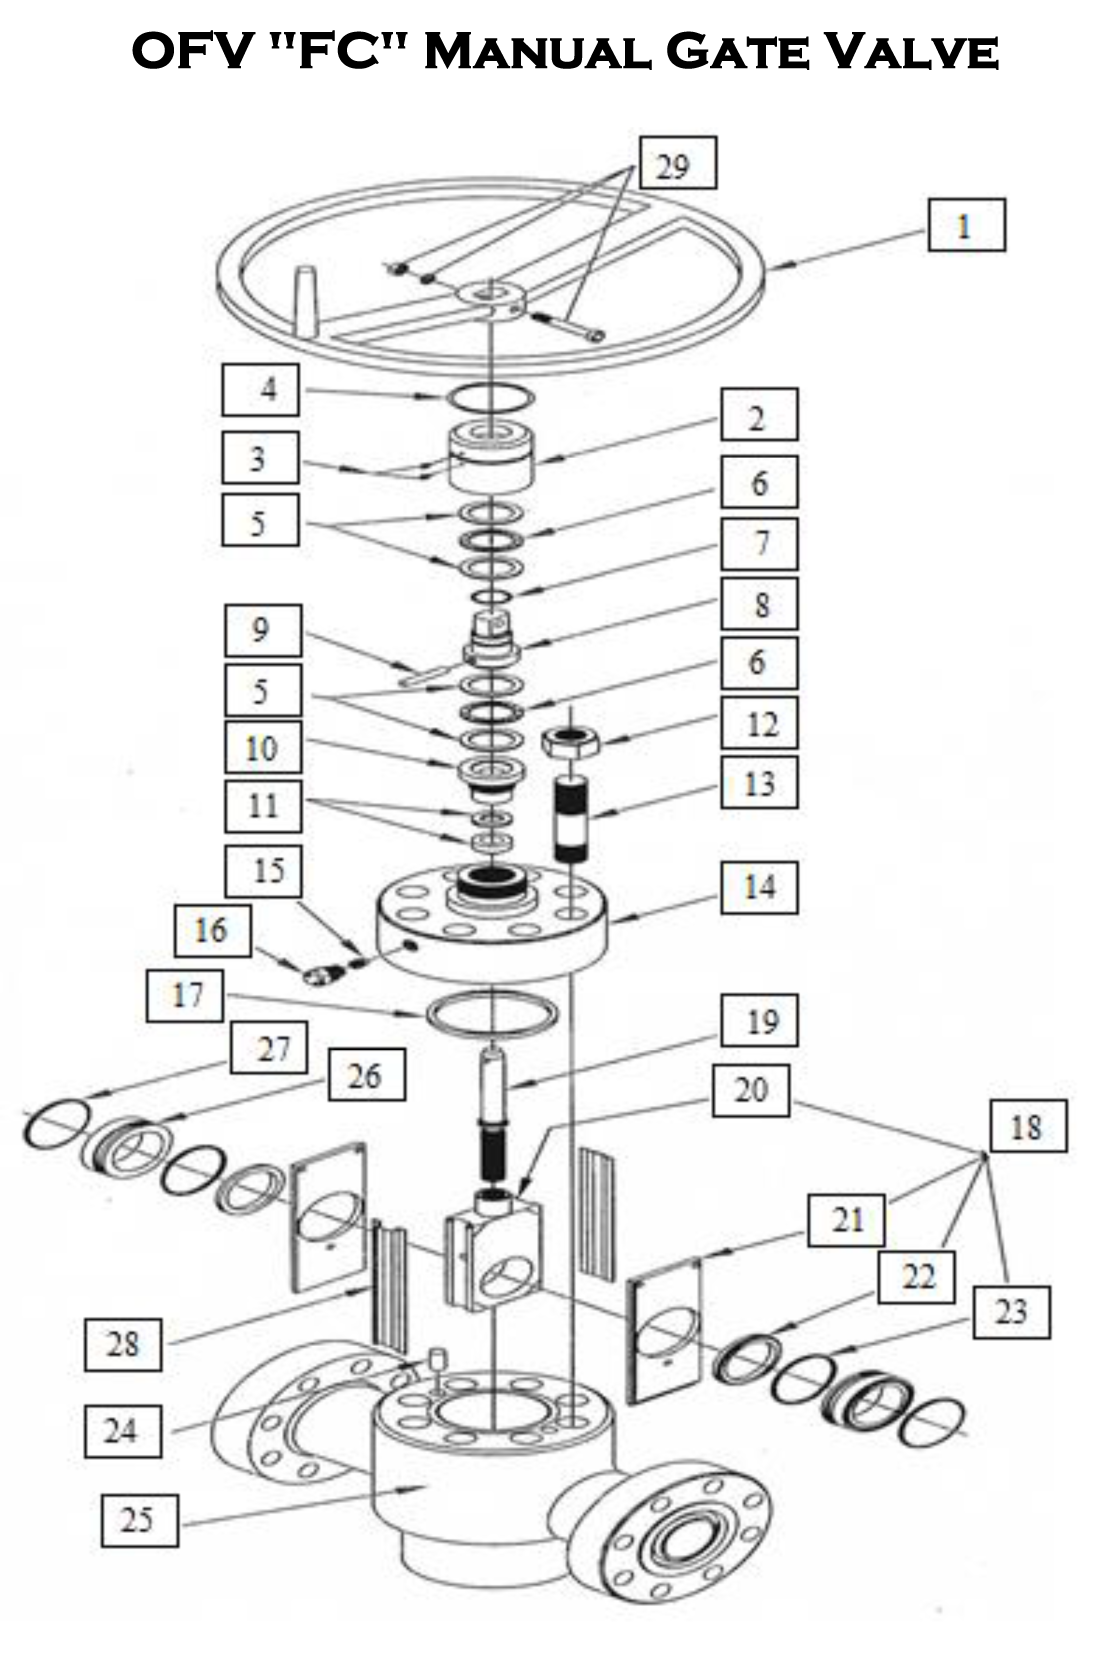 Oil field valve service supply manual gate valve pooptronica Images